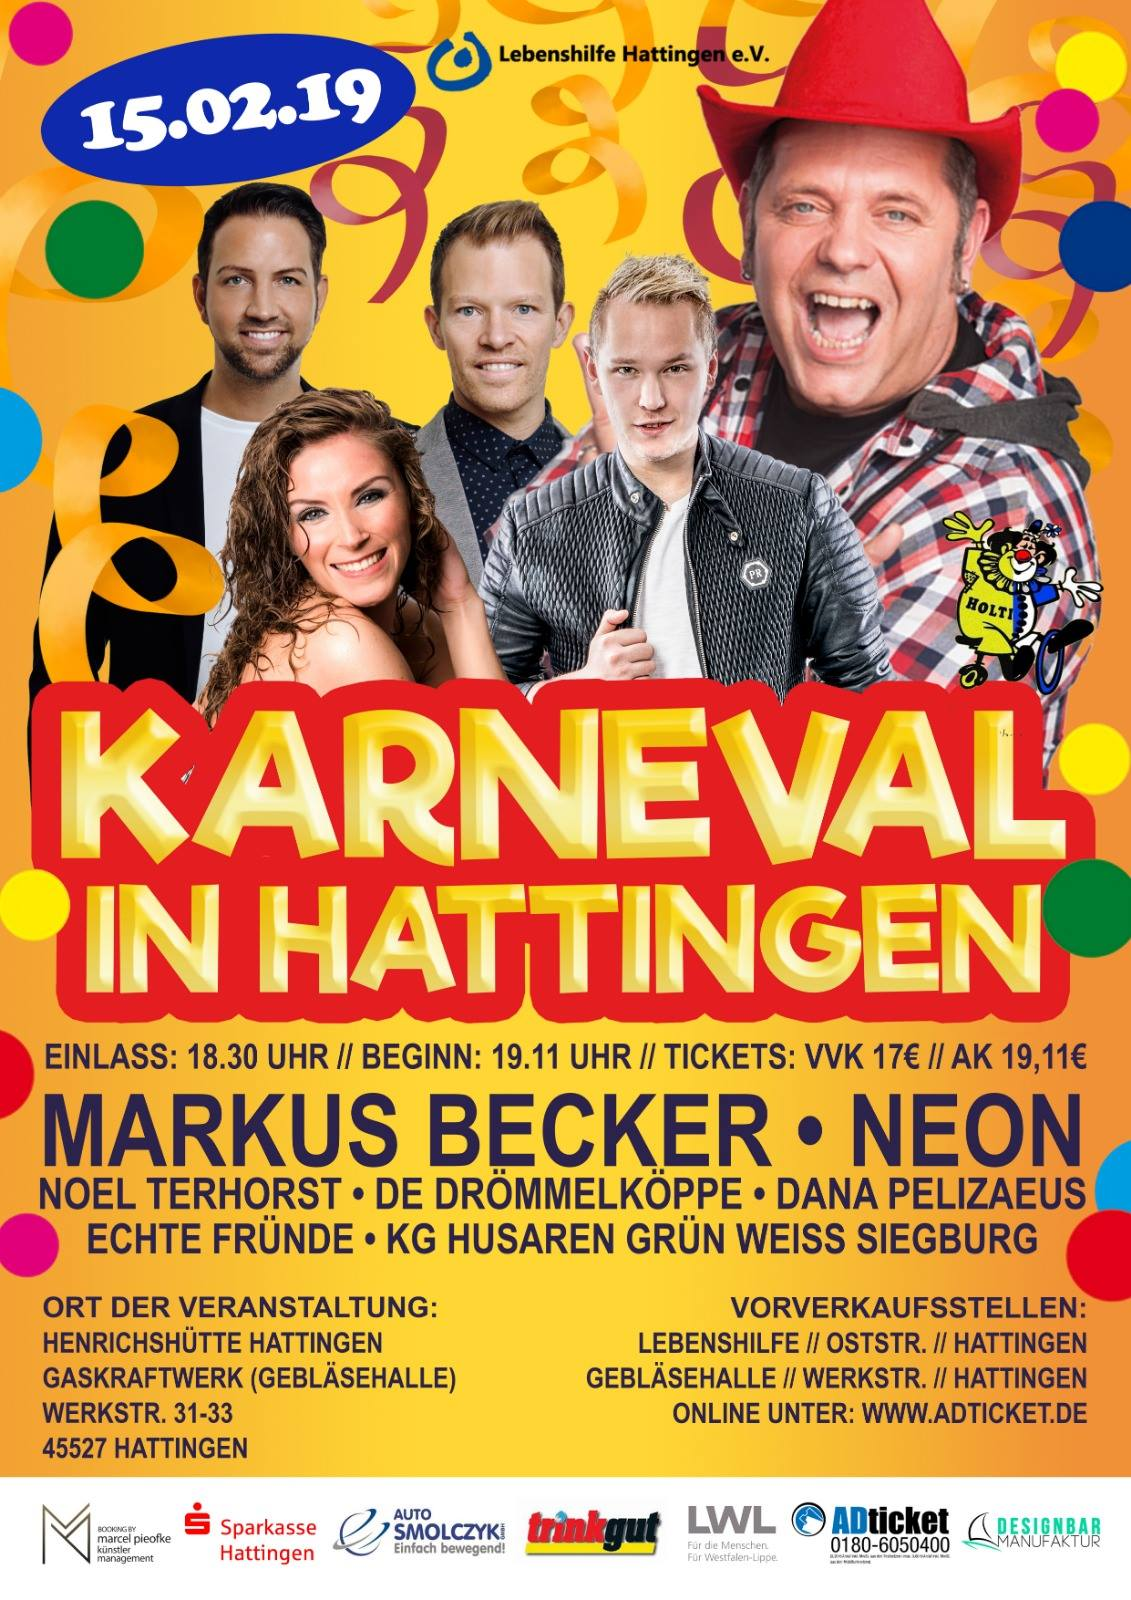 Karneval in Hattingen